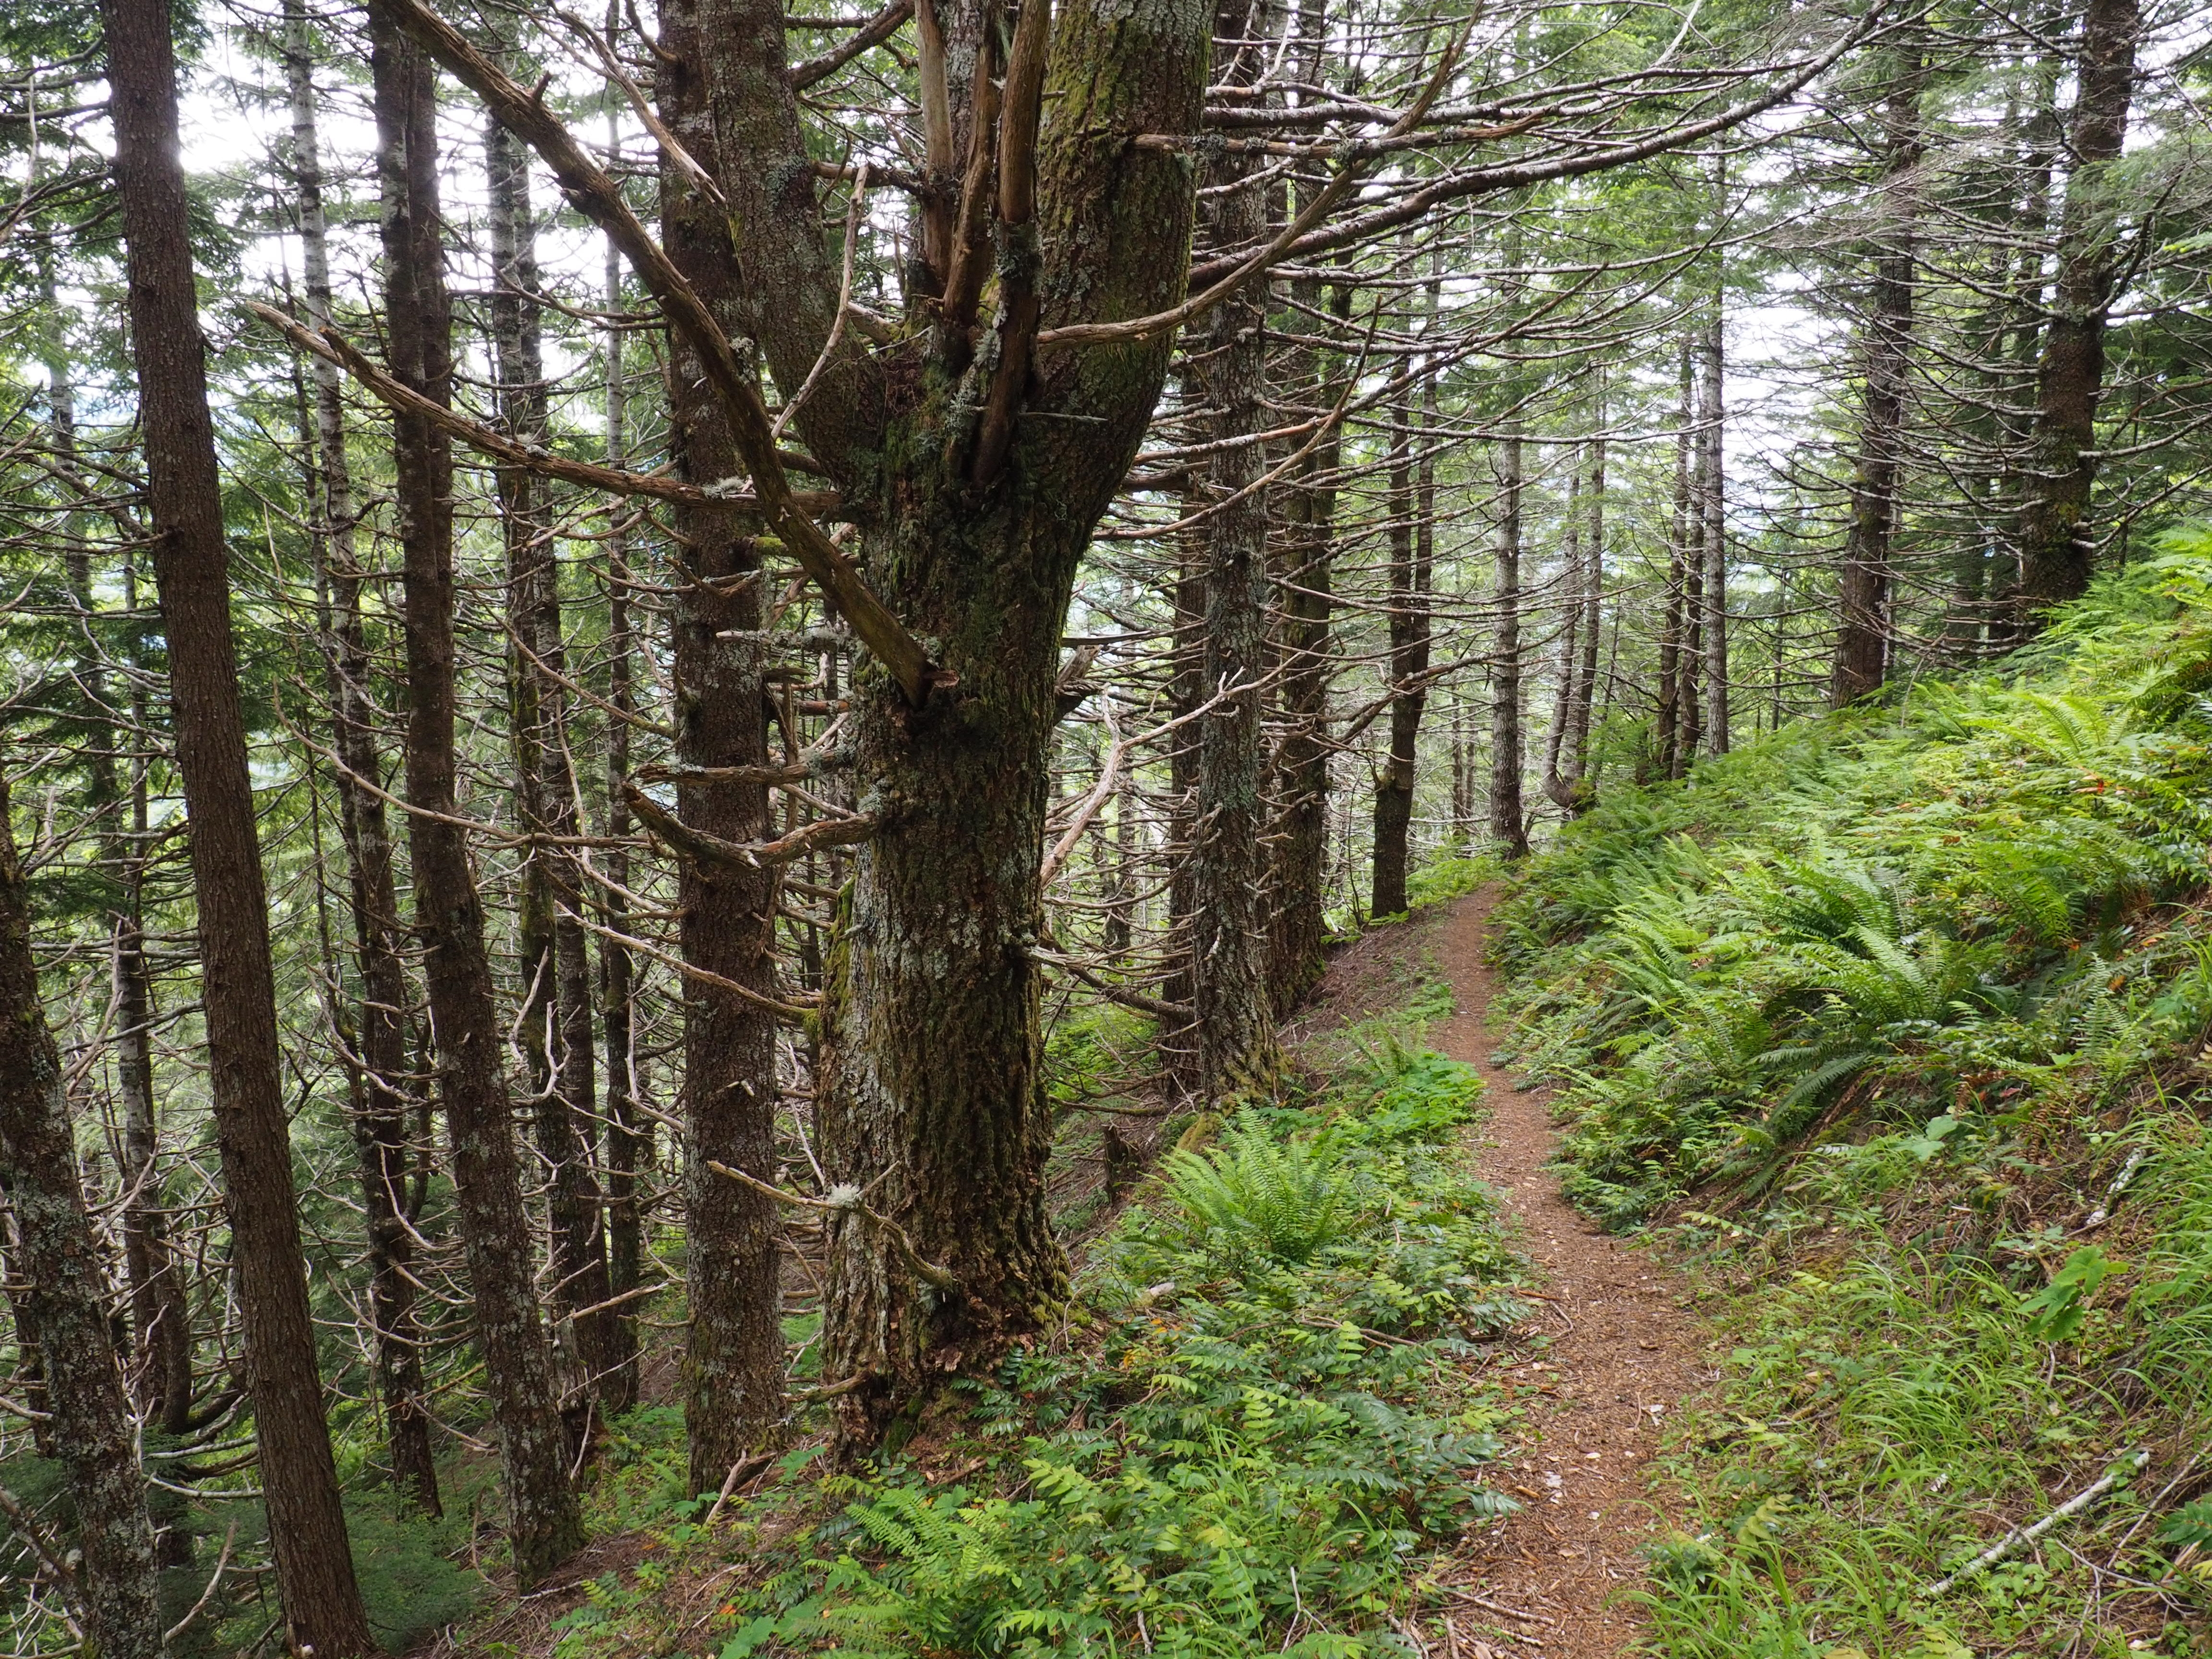 In contrast with their smooth, lower elevation neighbors, conifers along the ridgetop bristle with branch stubs like so many fishbones on end. Kloshe Nanitch Trail, June 17, 2016.